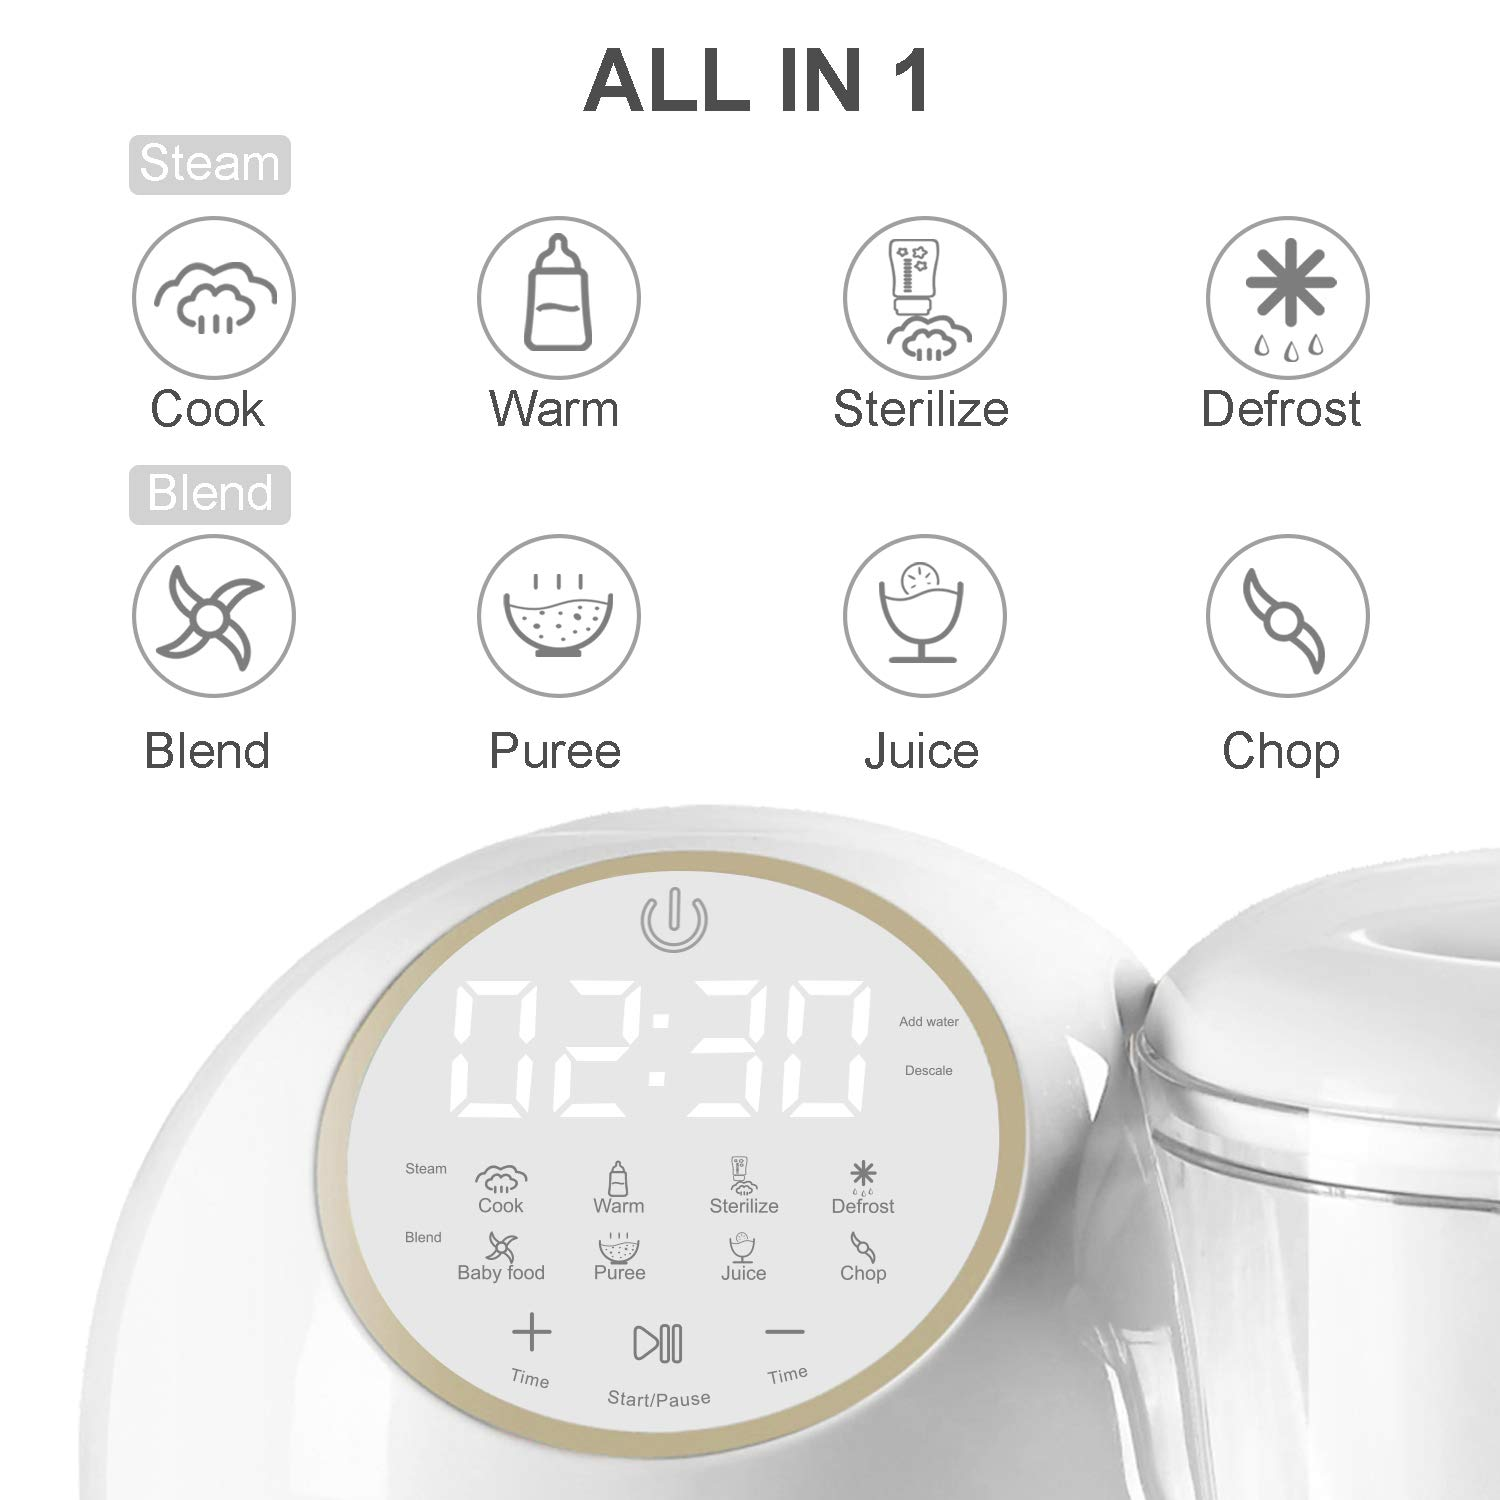 Baby Food Maker for Infants and Toddlers, Bable All in 1 Food Processor Mills Machine with Steam, Blend, Chop, Reheater, Grinder and Auto Cleaning, Touch Control Panel, Auto Shut-Off by BABLE (Image #2)